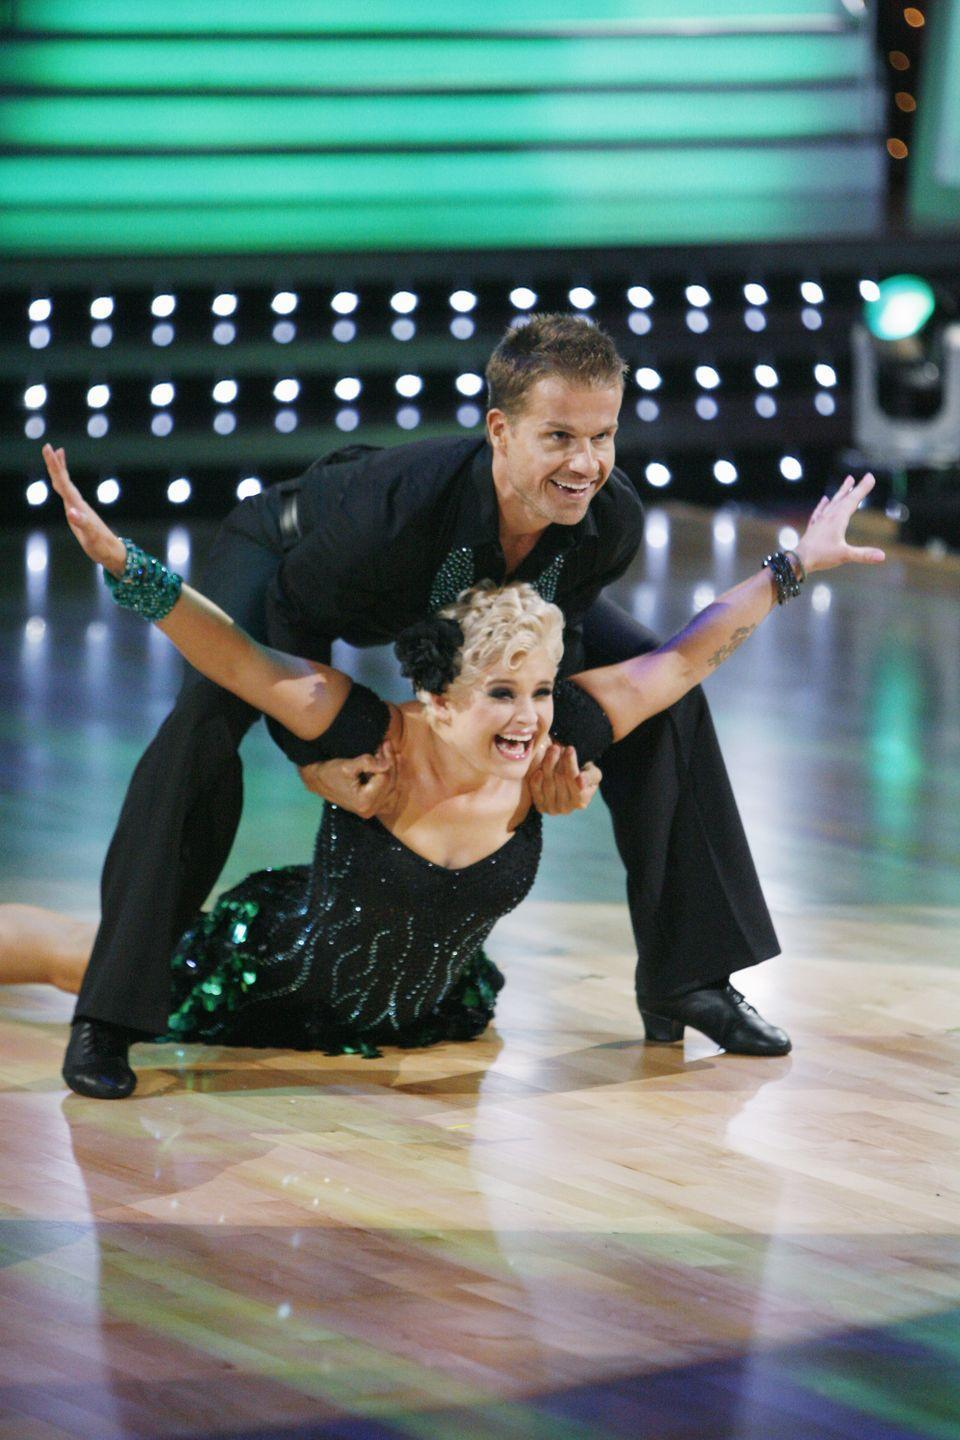 <p>Ozzy's daughter came in third place, surpassing Melissa Joan Hart and even Aaron Carter. We stan a <em>Fashion Police</em> star with perfect dance moves!</p>